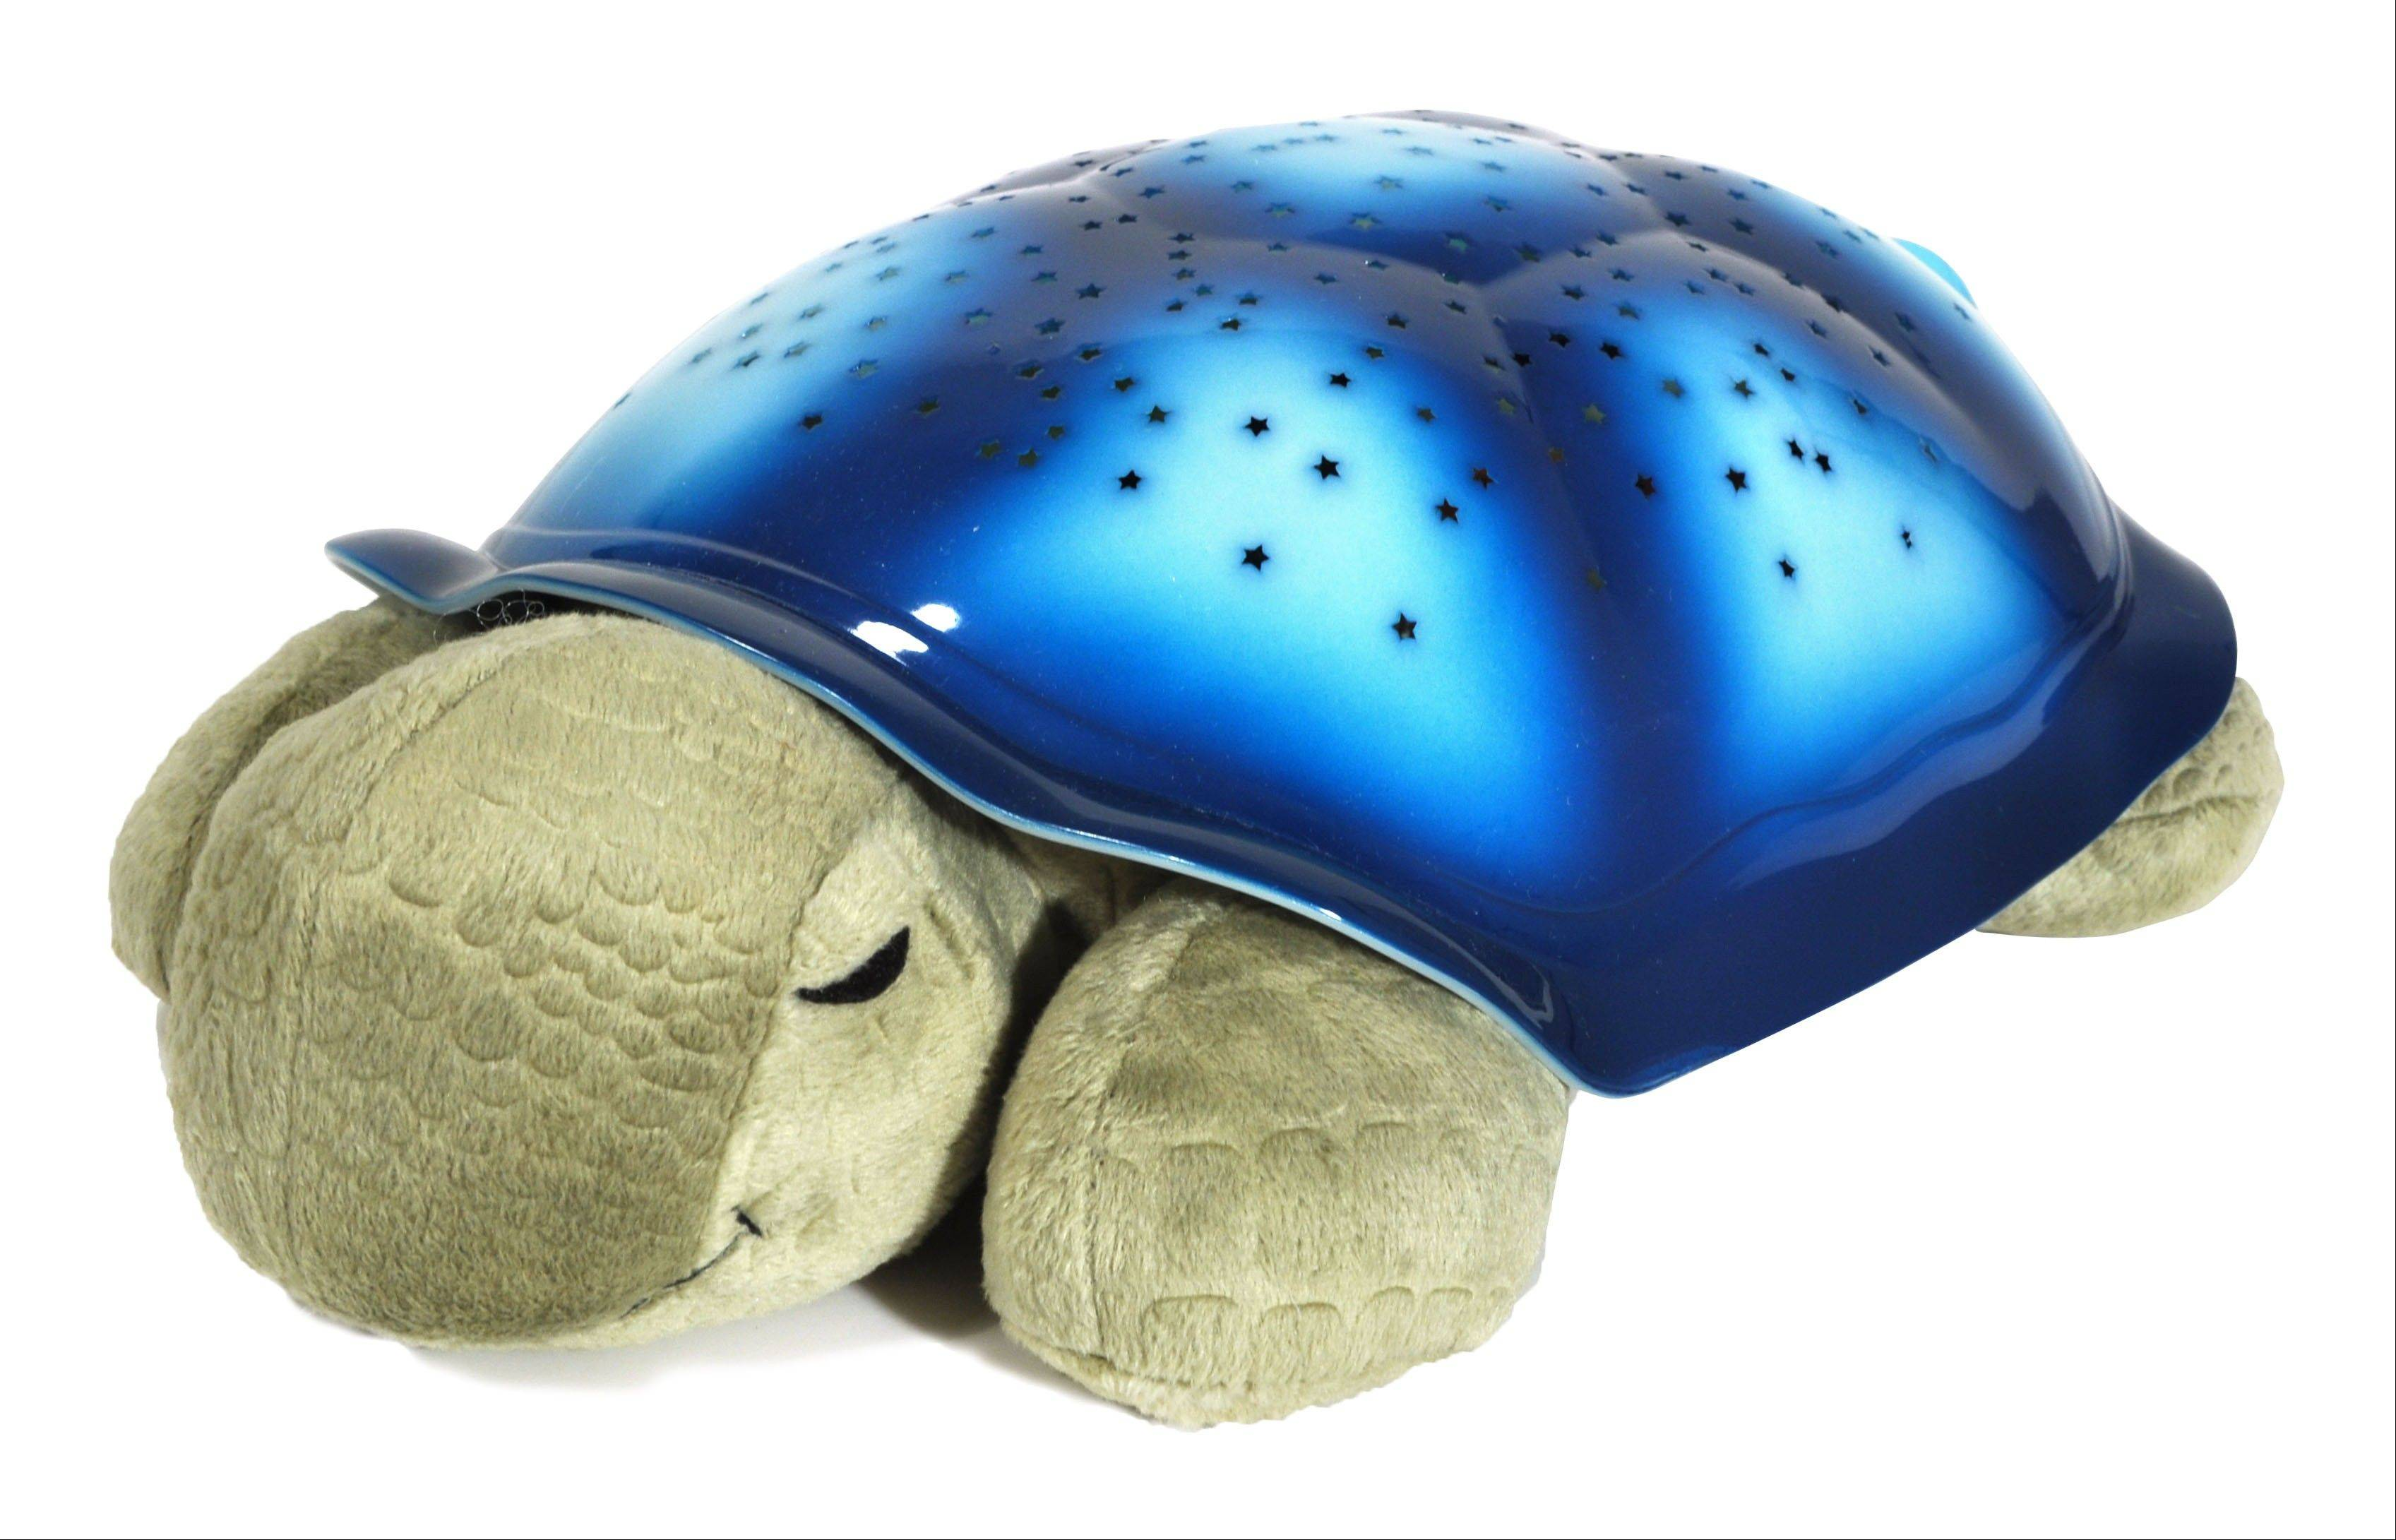 Twilight Turtle pillow lights up a bedroom�s ceiling with a starry pattern. Parents can download lullabies and stream them through the turtle via Bluetooth technology.